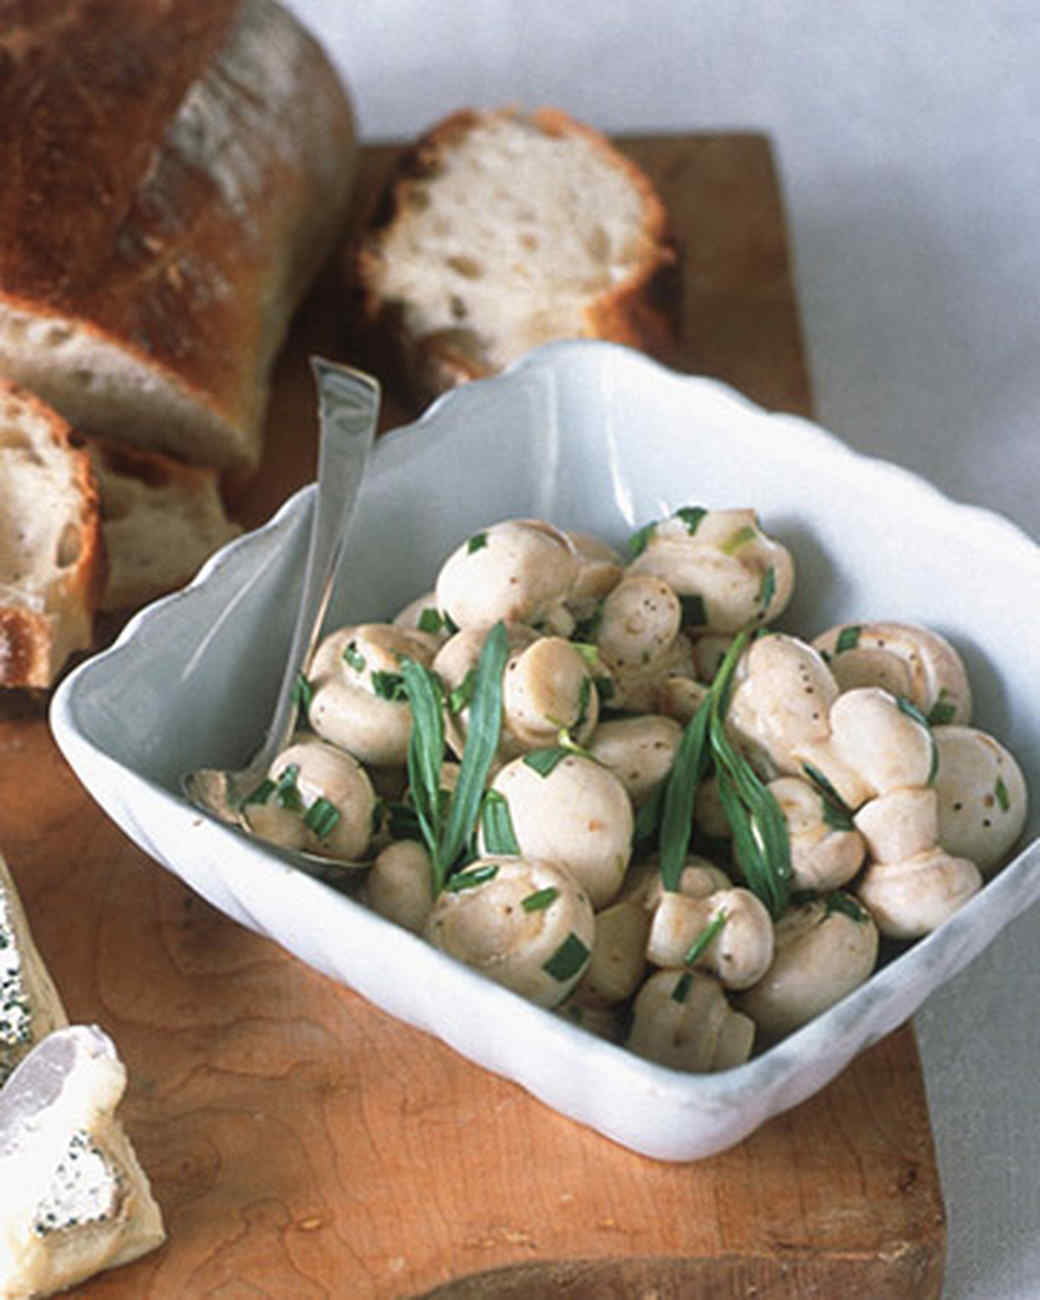 Tarragon-Marinated Mushrooms